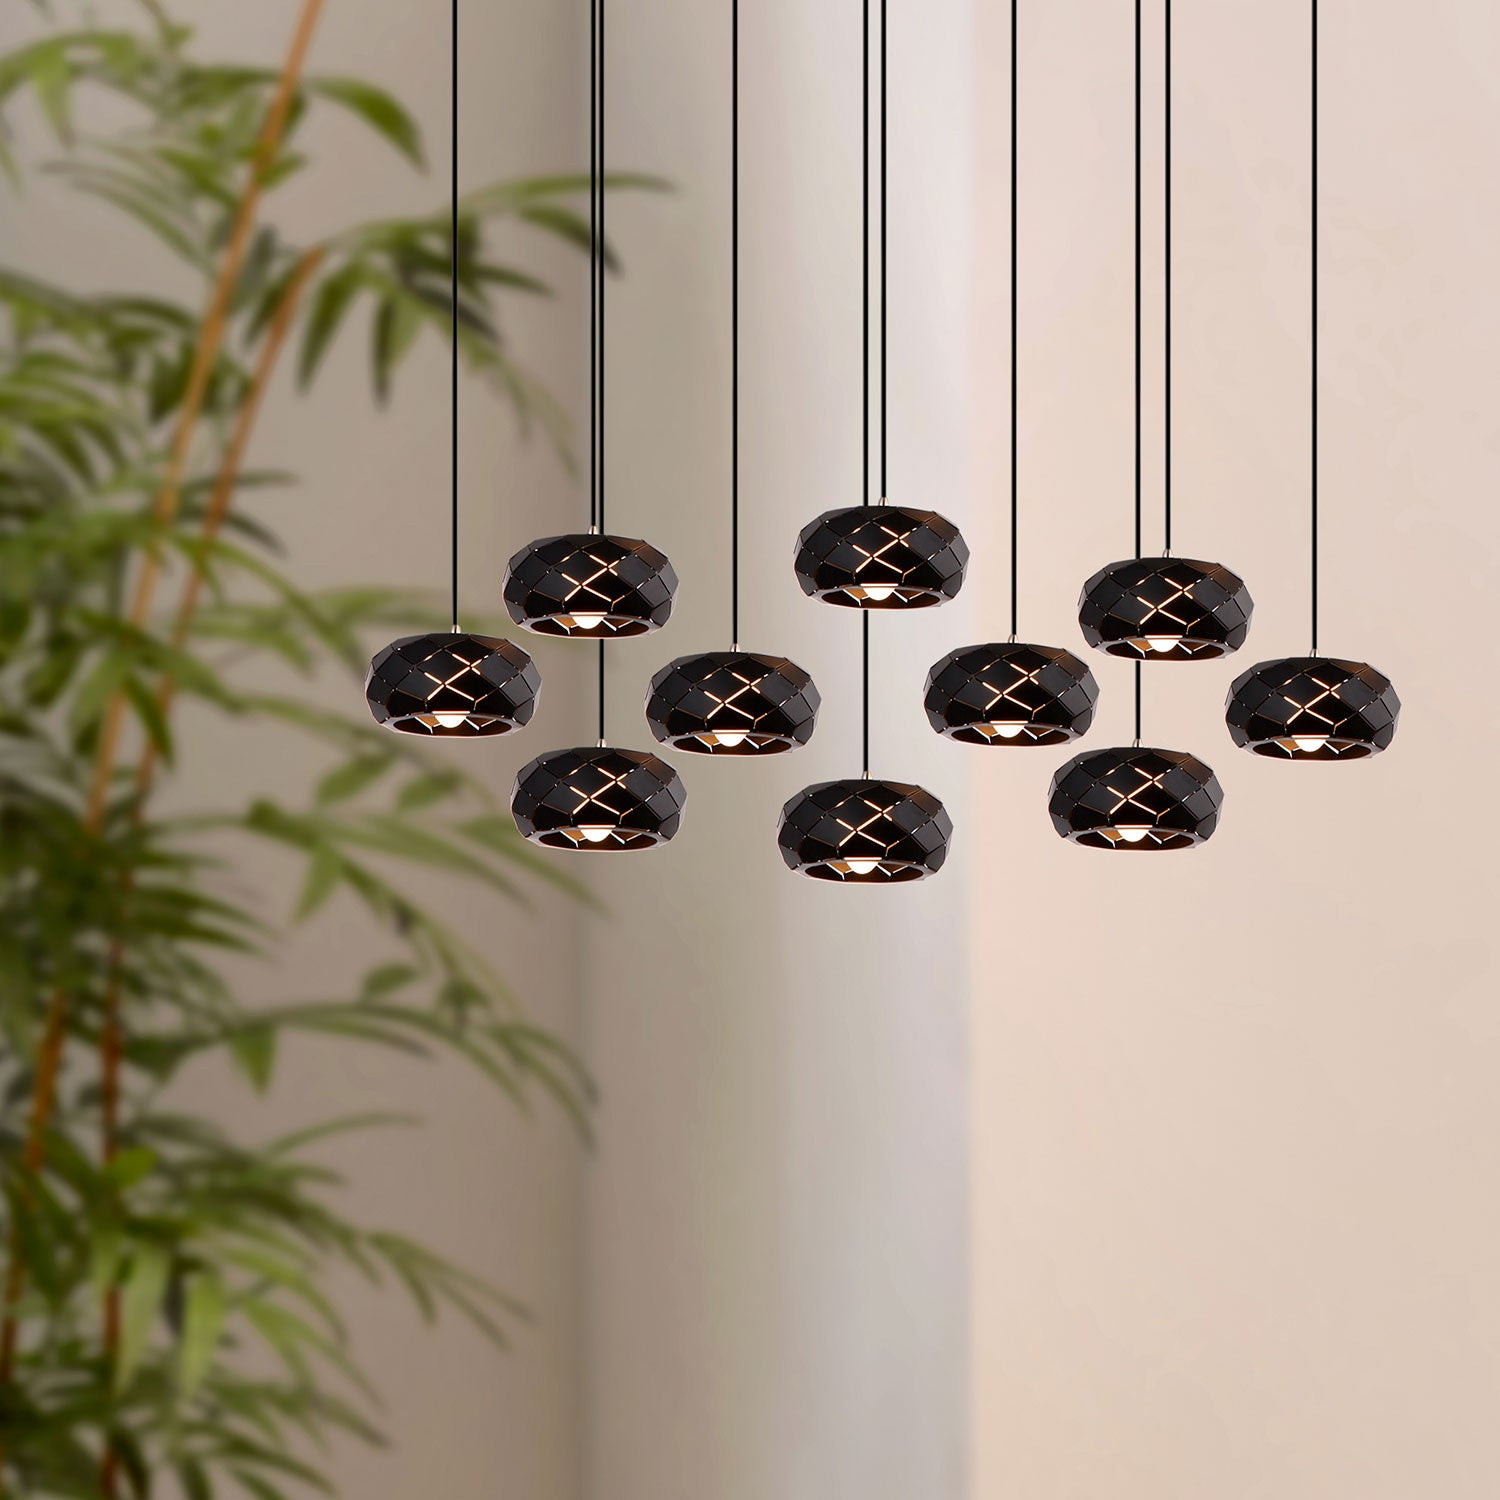 Crust 10-light LED mini pendant